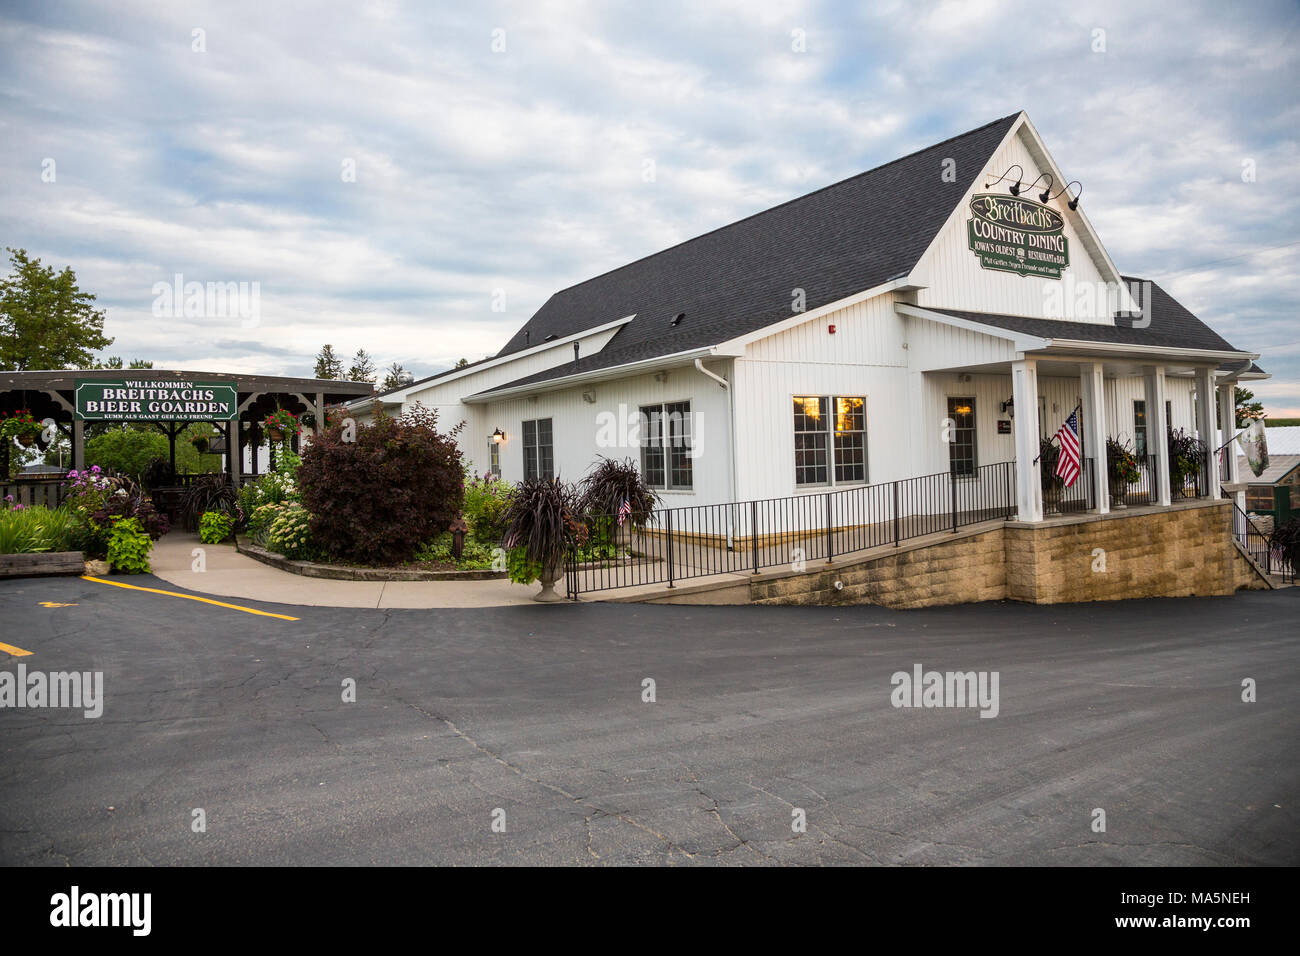 Breitbach S Restaurant Balltown Iowa Country Food In A German Tradition Stock Photo Alamy